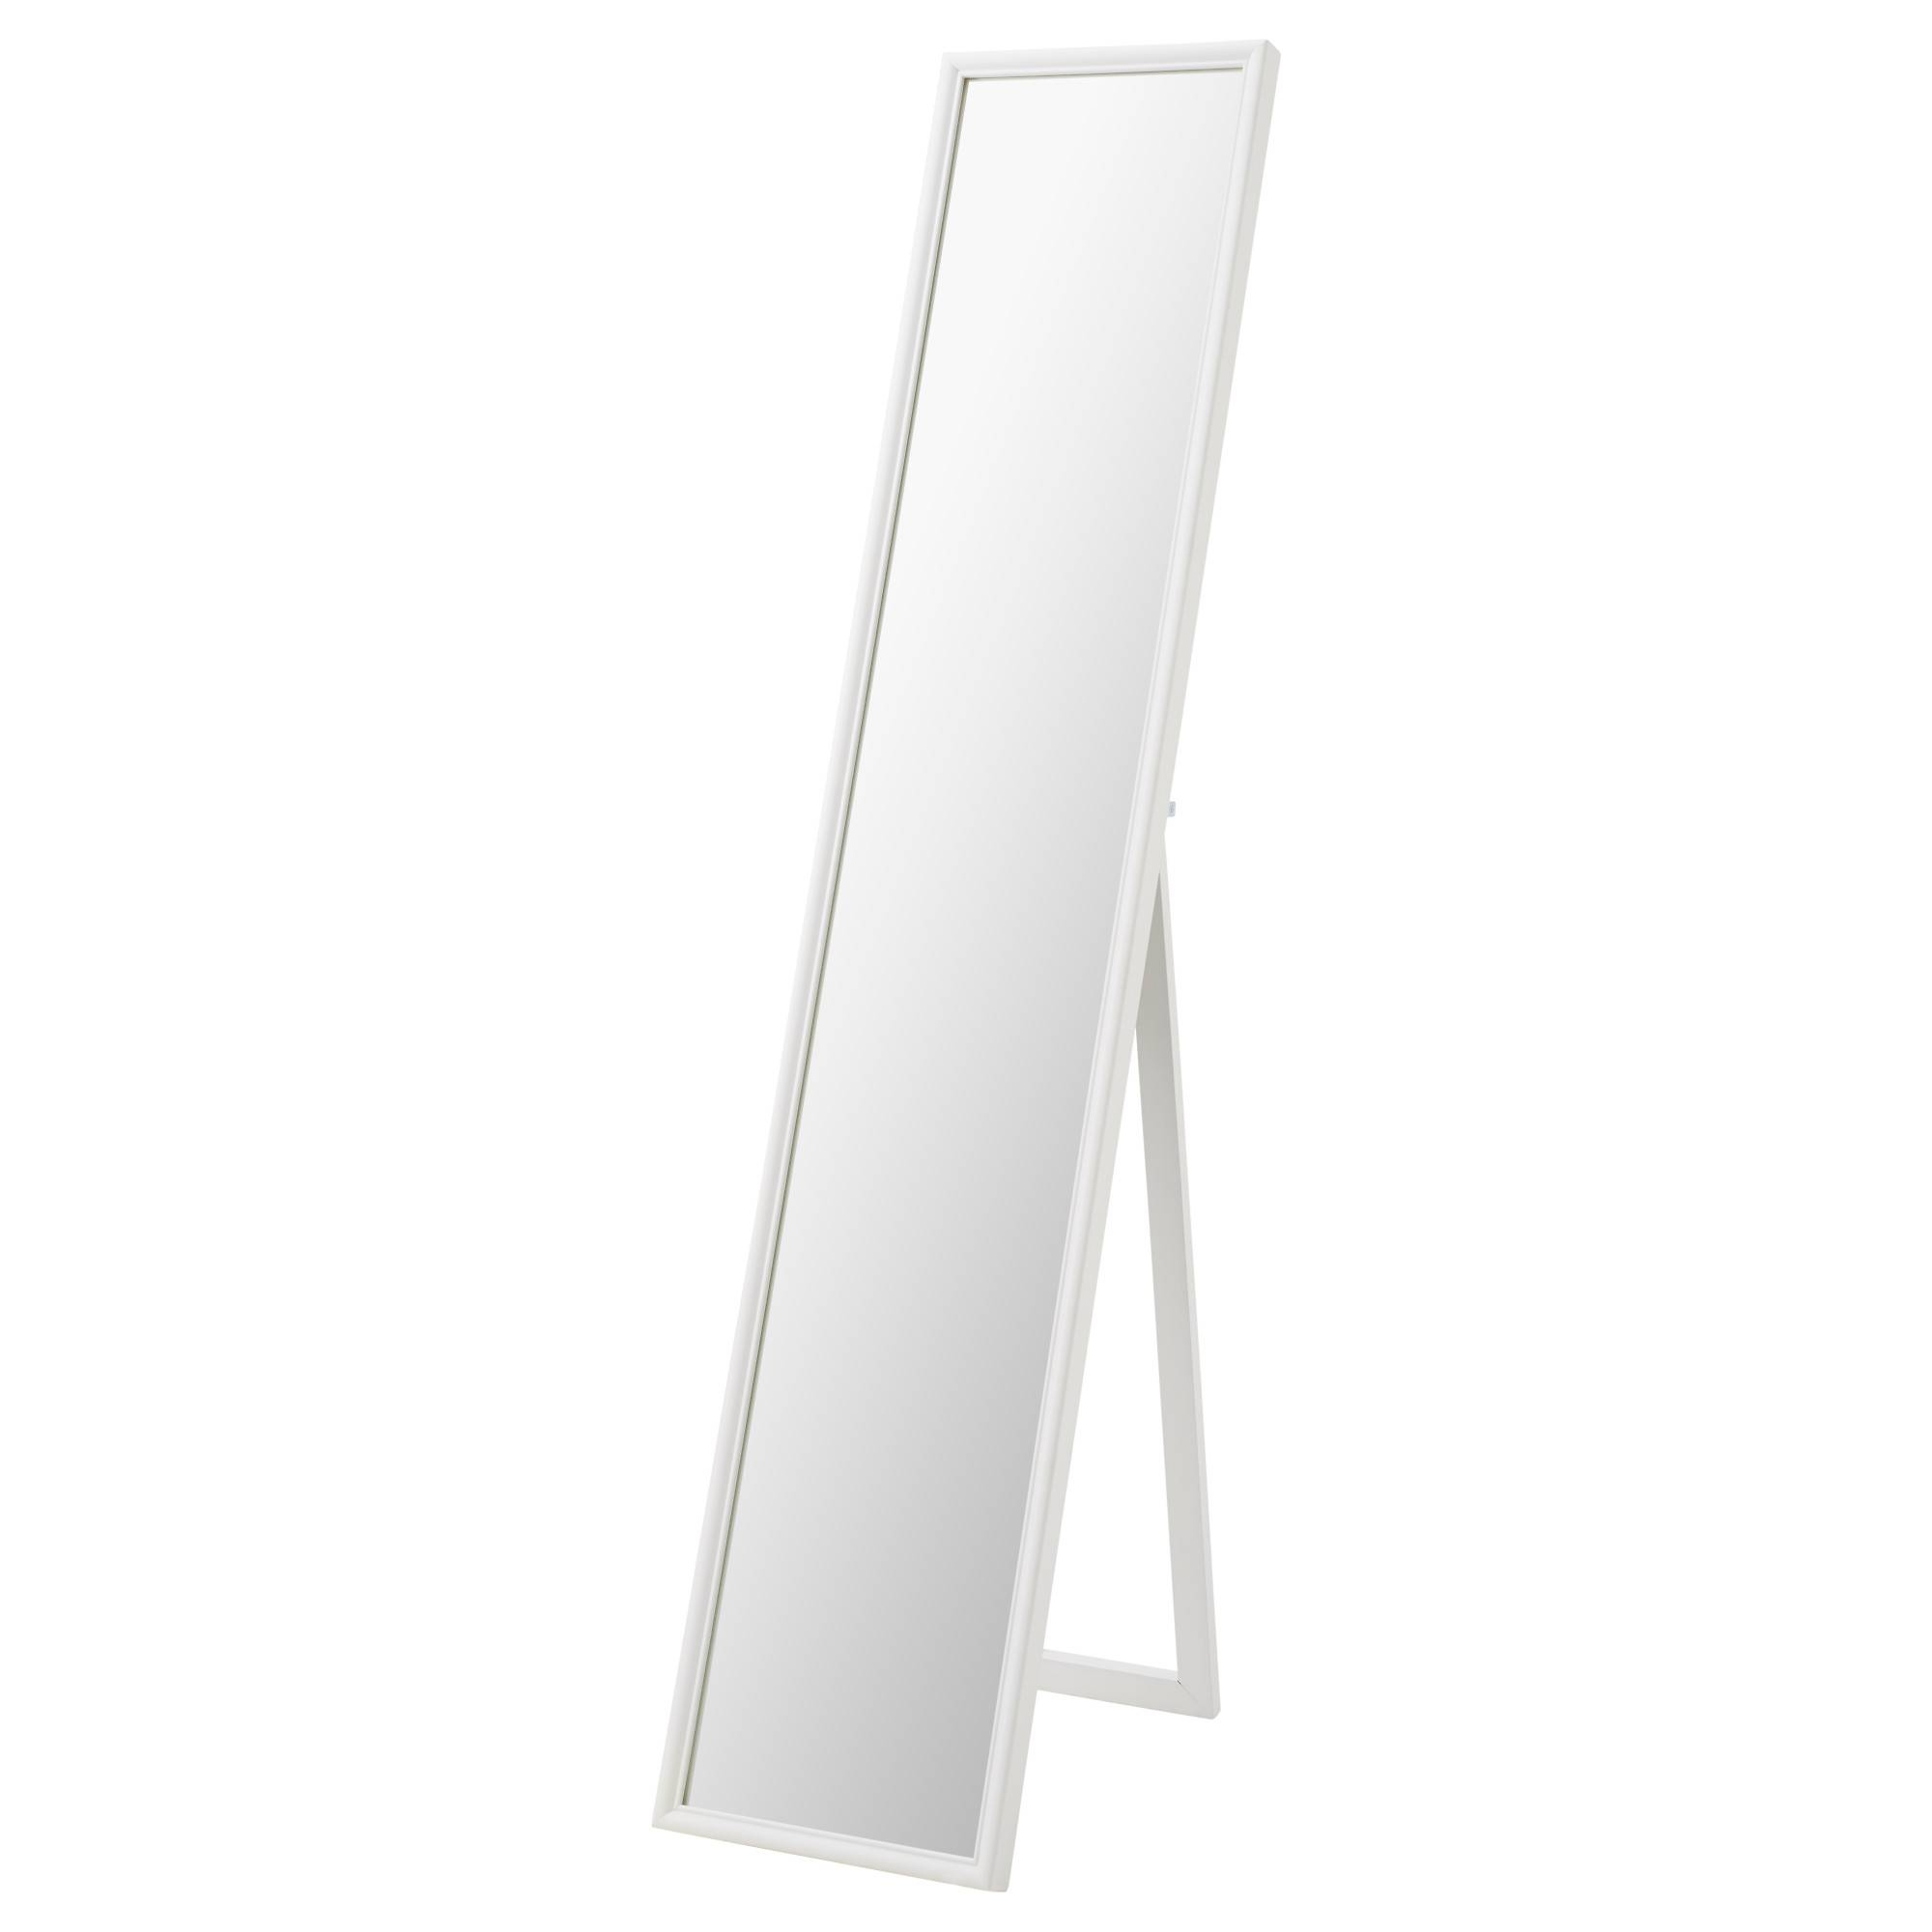 Styles: Kmart Mirrors | Free Standing Mirrors | White Full Length throughout Free Standing Mirrors (Image 21 of 25)